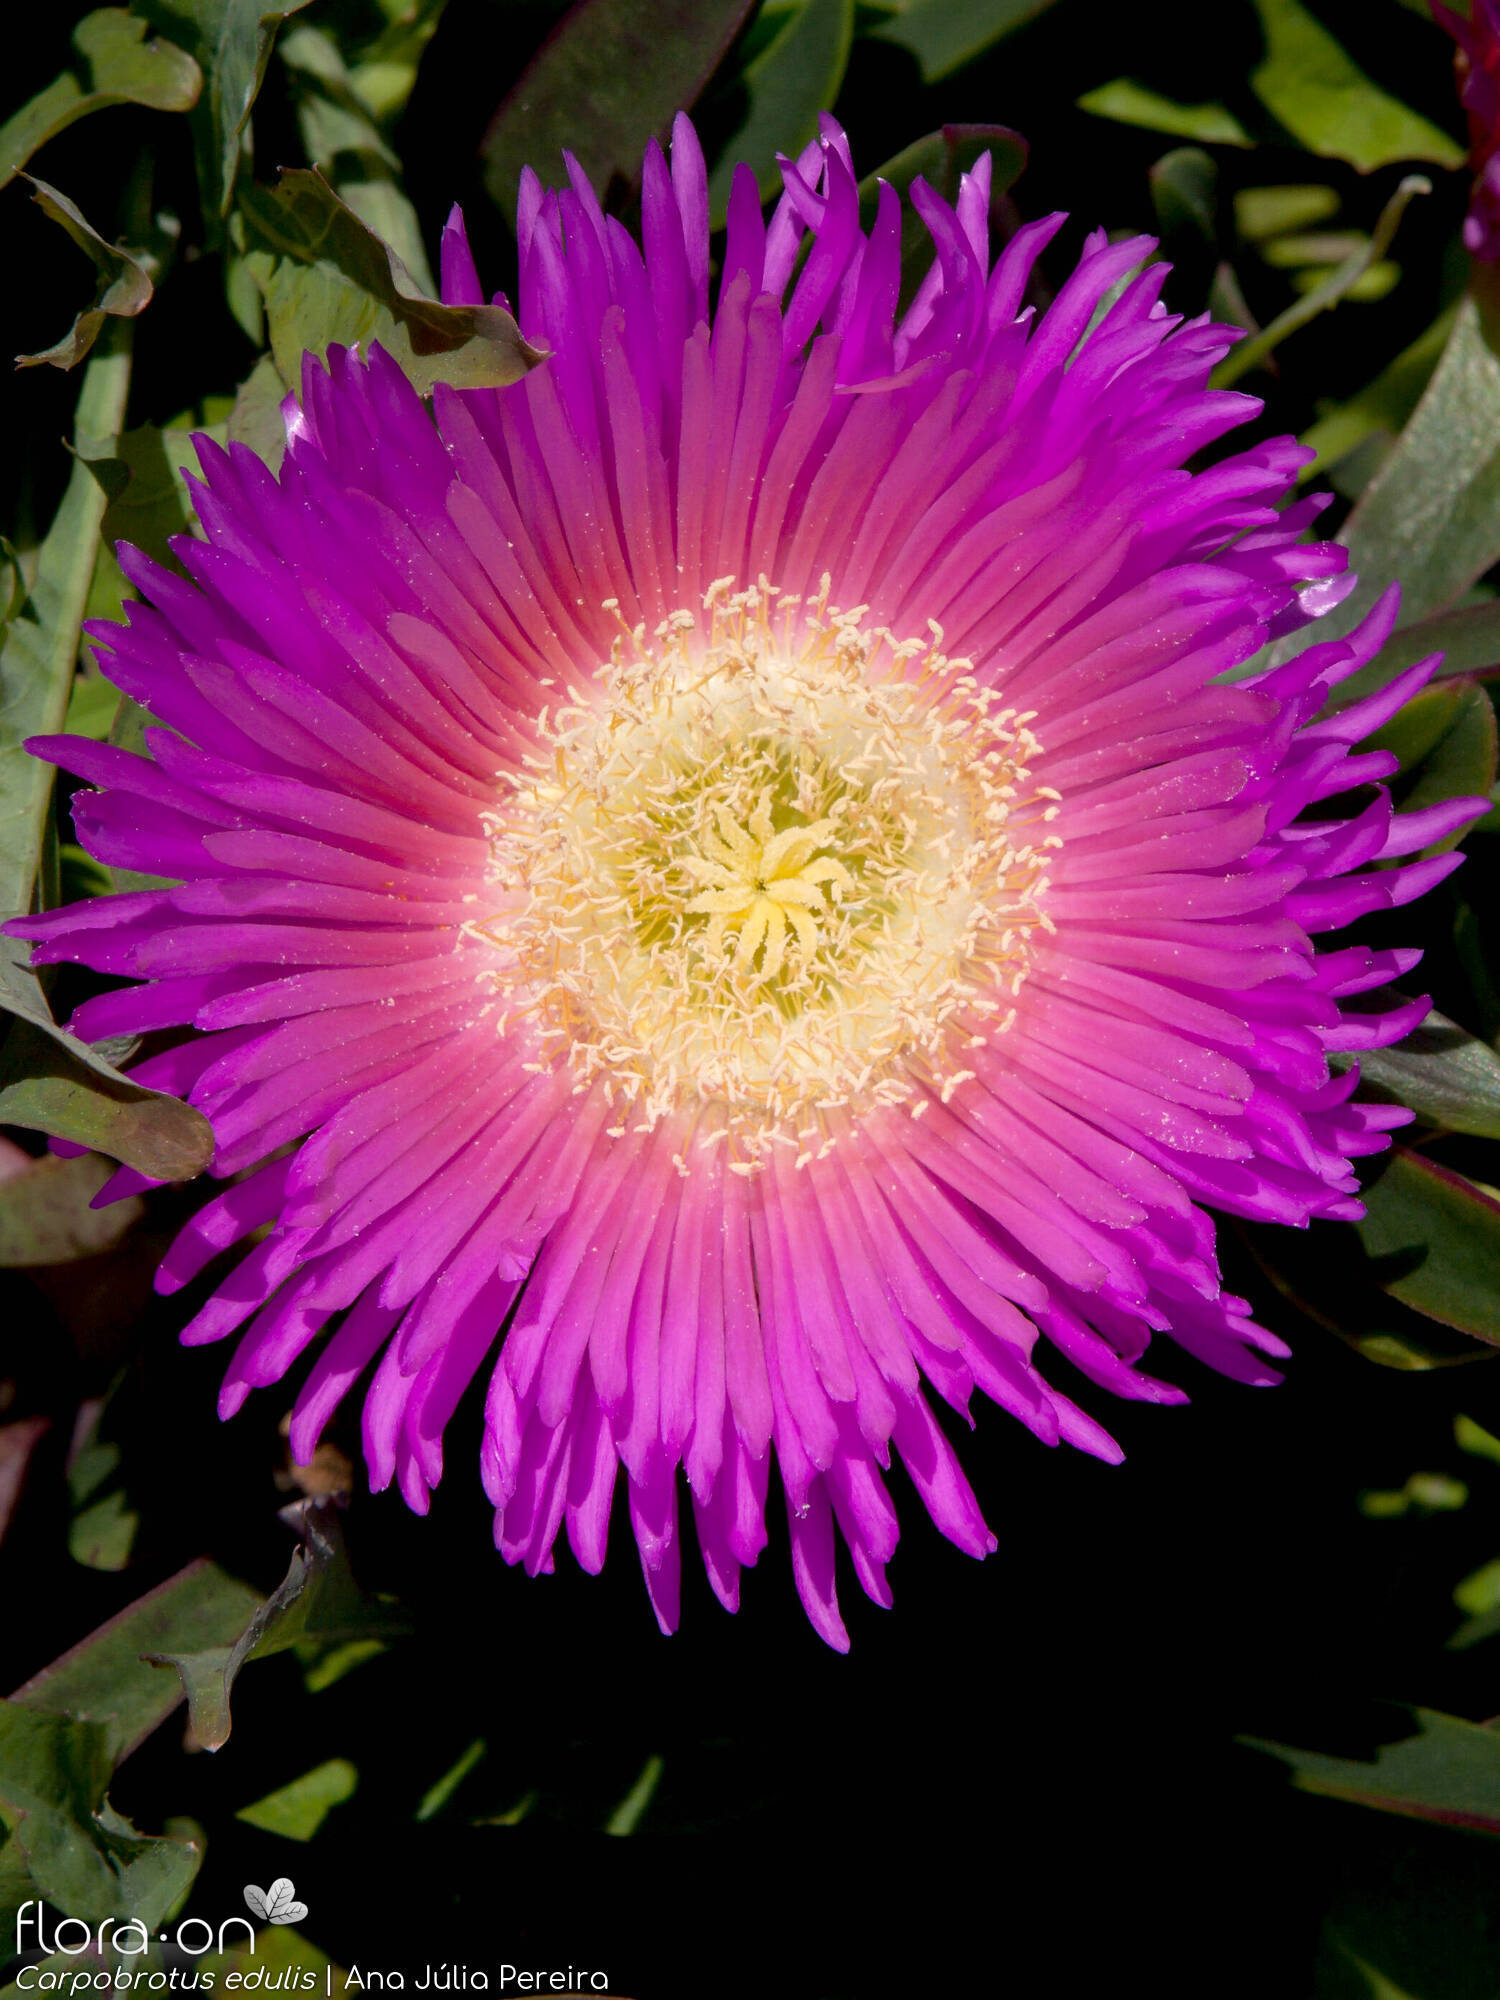 Carpobrotus edulis - Flor (close-up) | Ana Júlia Pereira; CC BY-NC 4.0